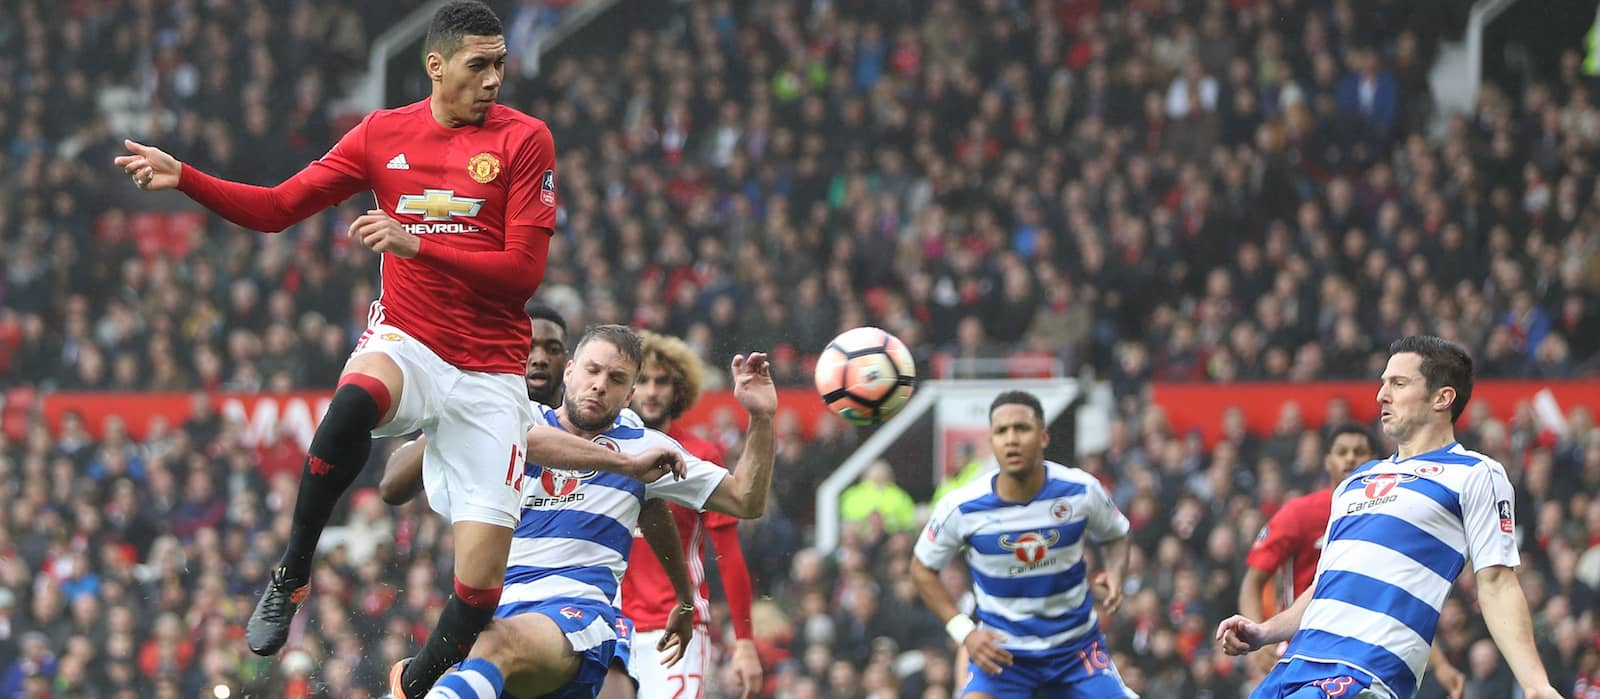 Manchester United willing to listen to offers for Chris Smalling – report